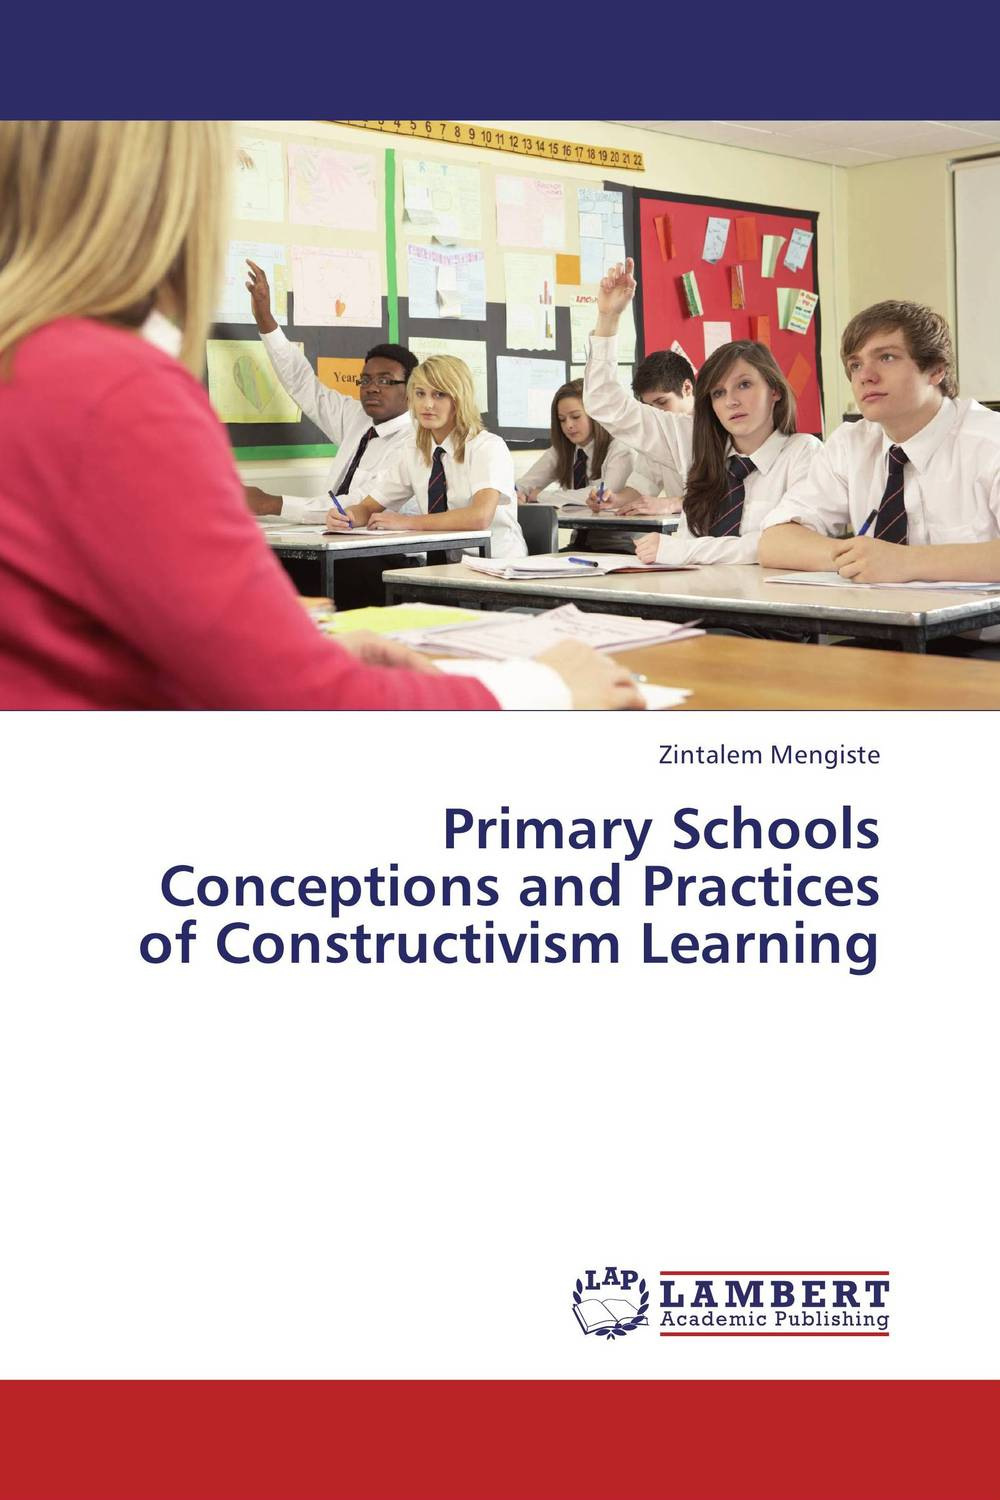 Primary Schools Conceptions and Practices of Constructivism Learning настенный декор15 х 17 см